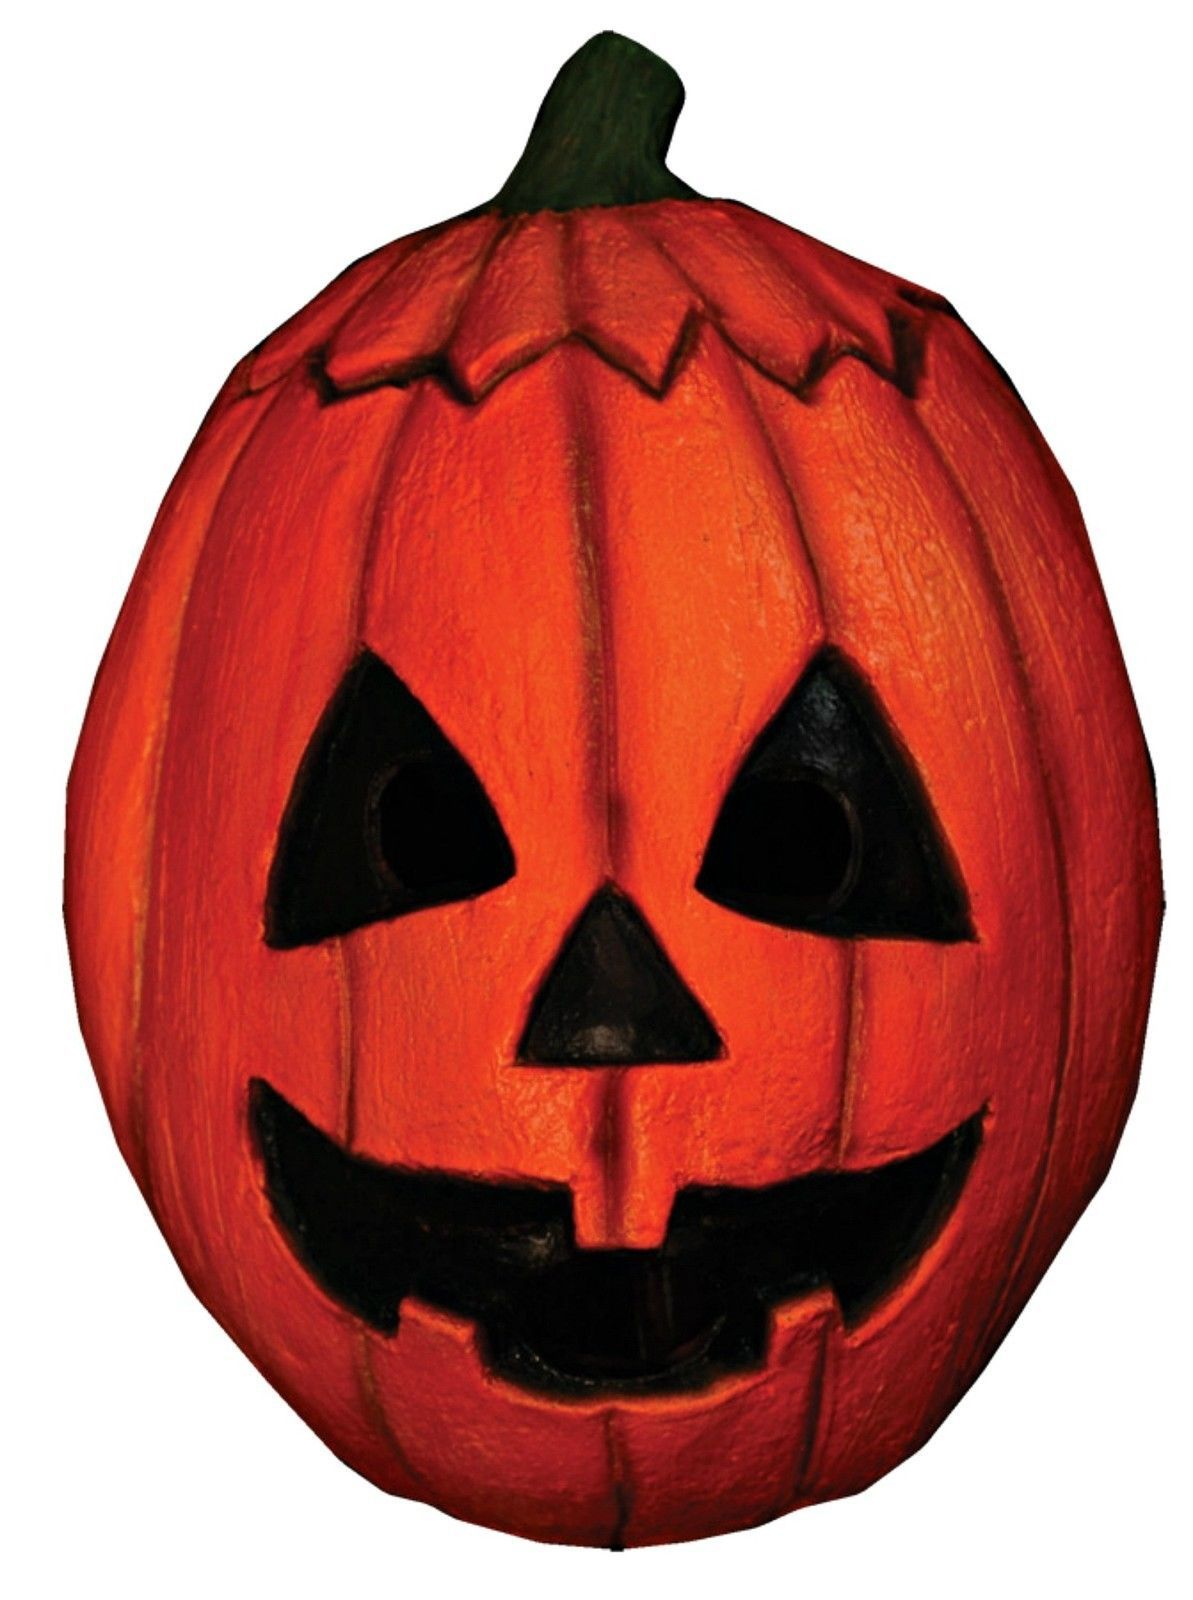 Primary image for Halloween III Jack-o'-lantern Pumpkin Trick or Treat Mask